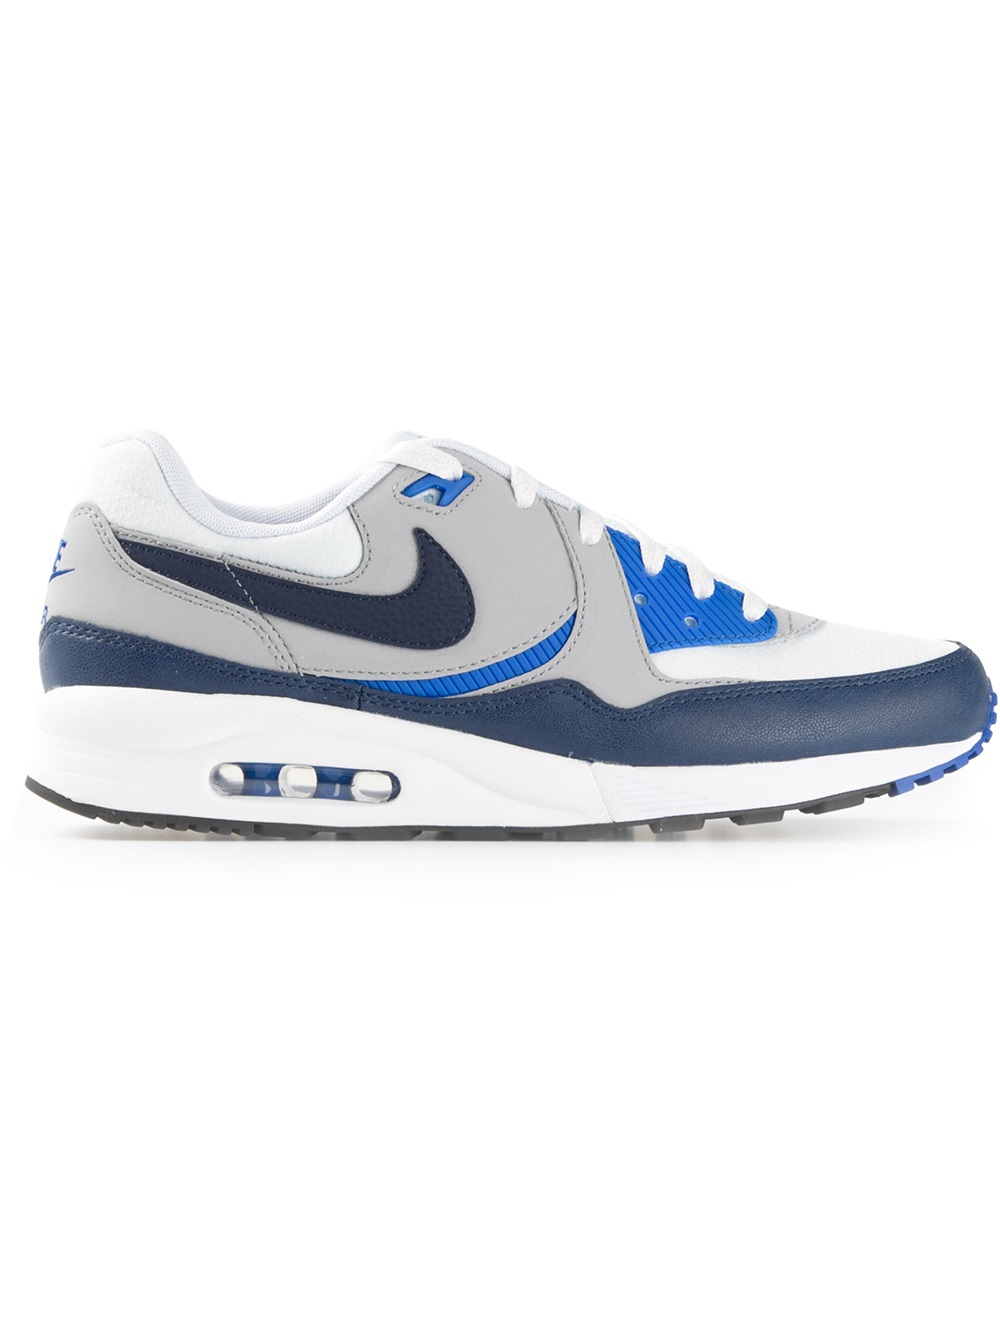 lyst nike air max light trainers in blue for men. Black Bedroom Furniture Sets. Home Design Ideas